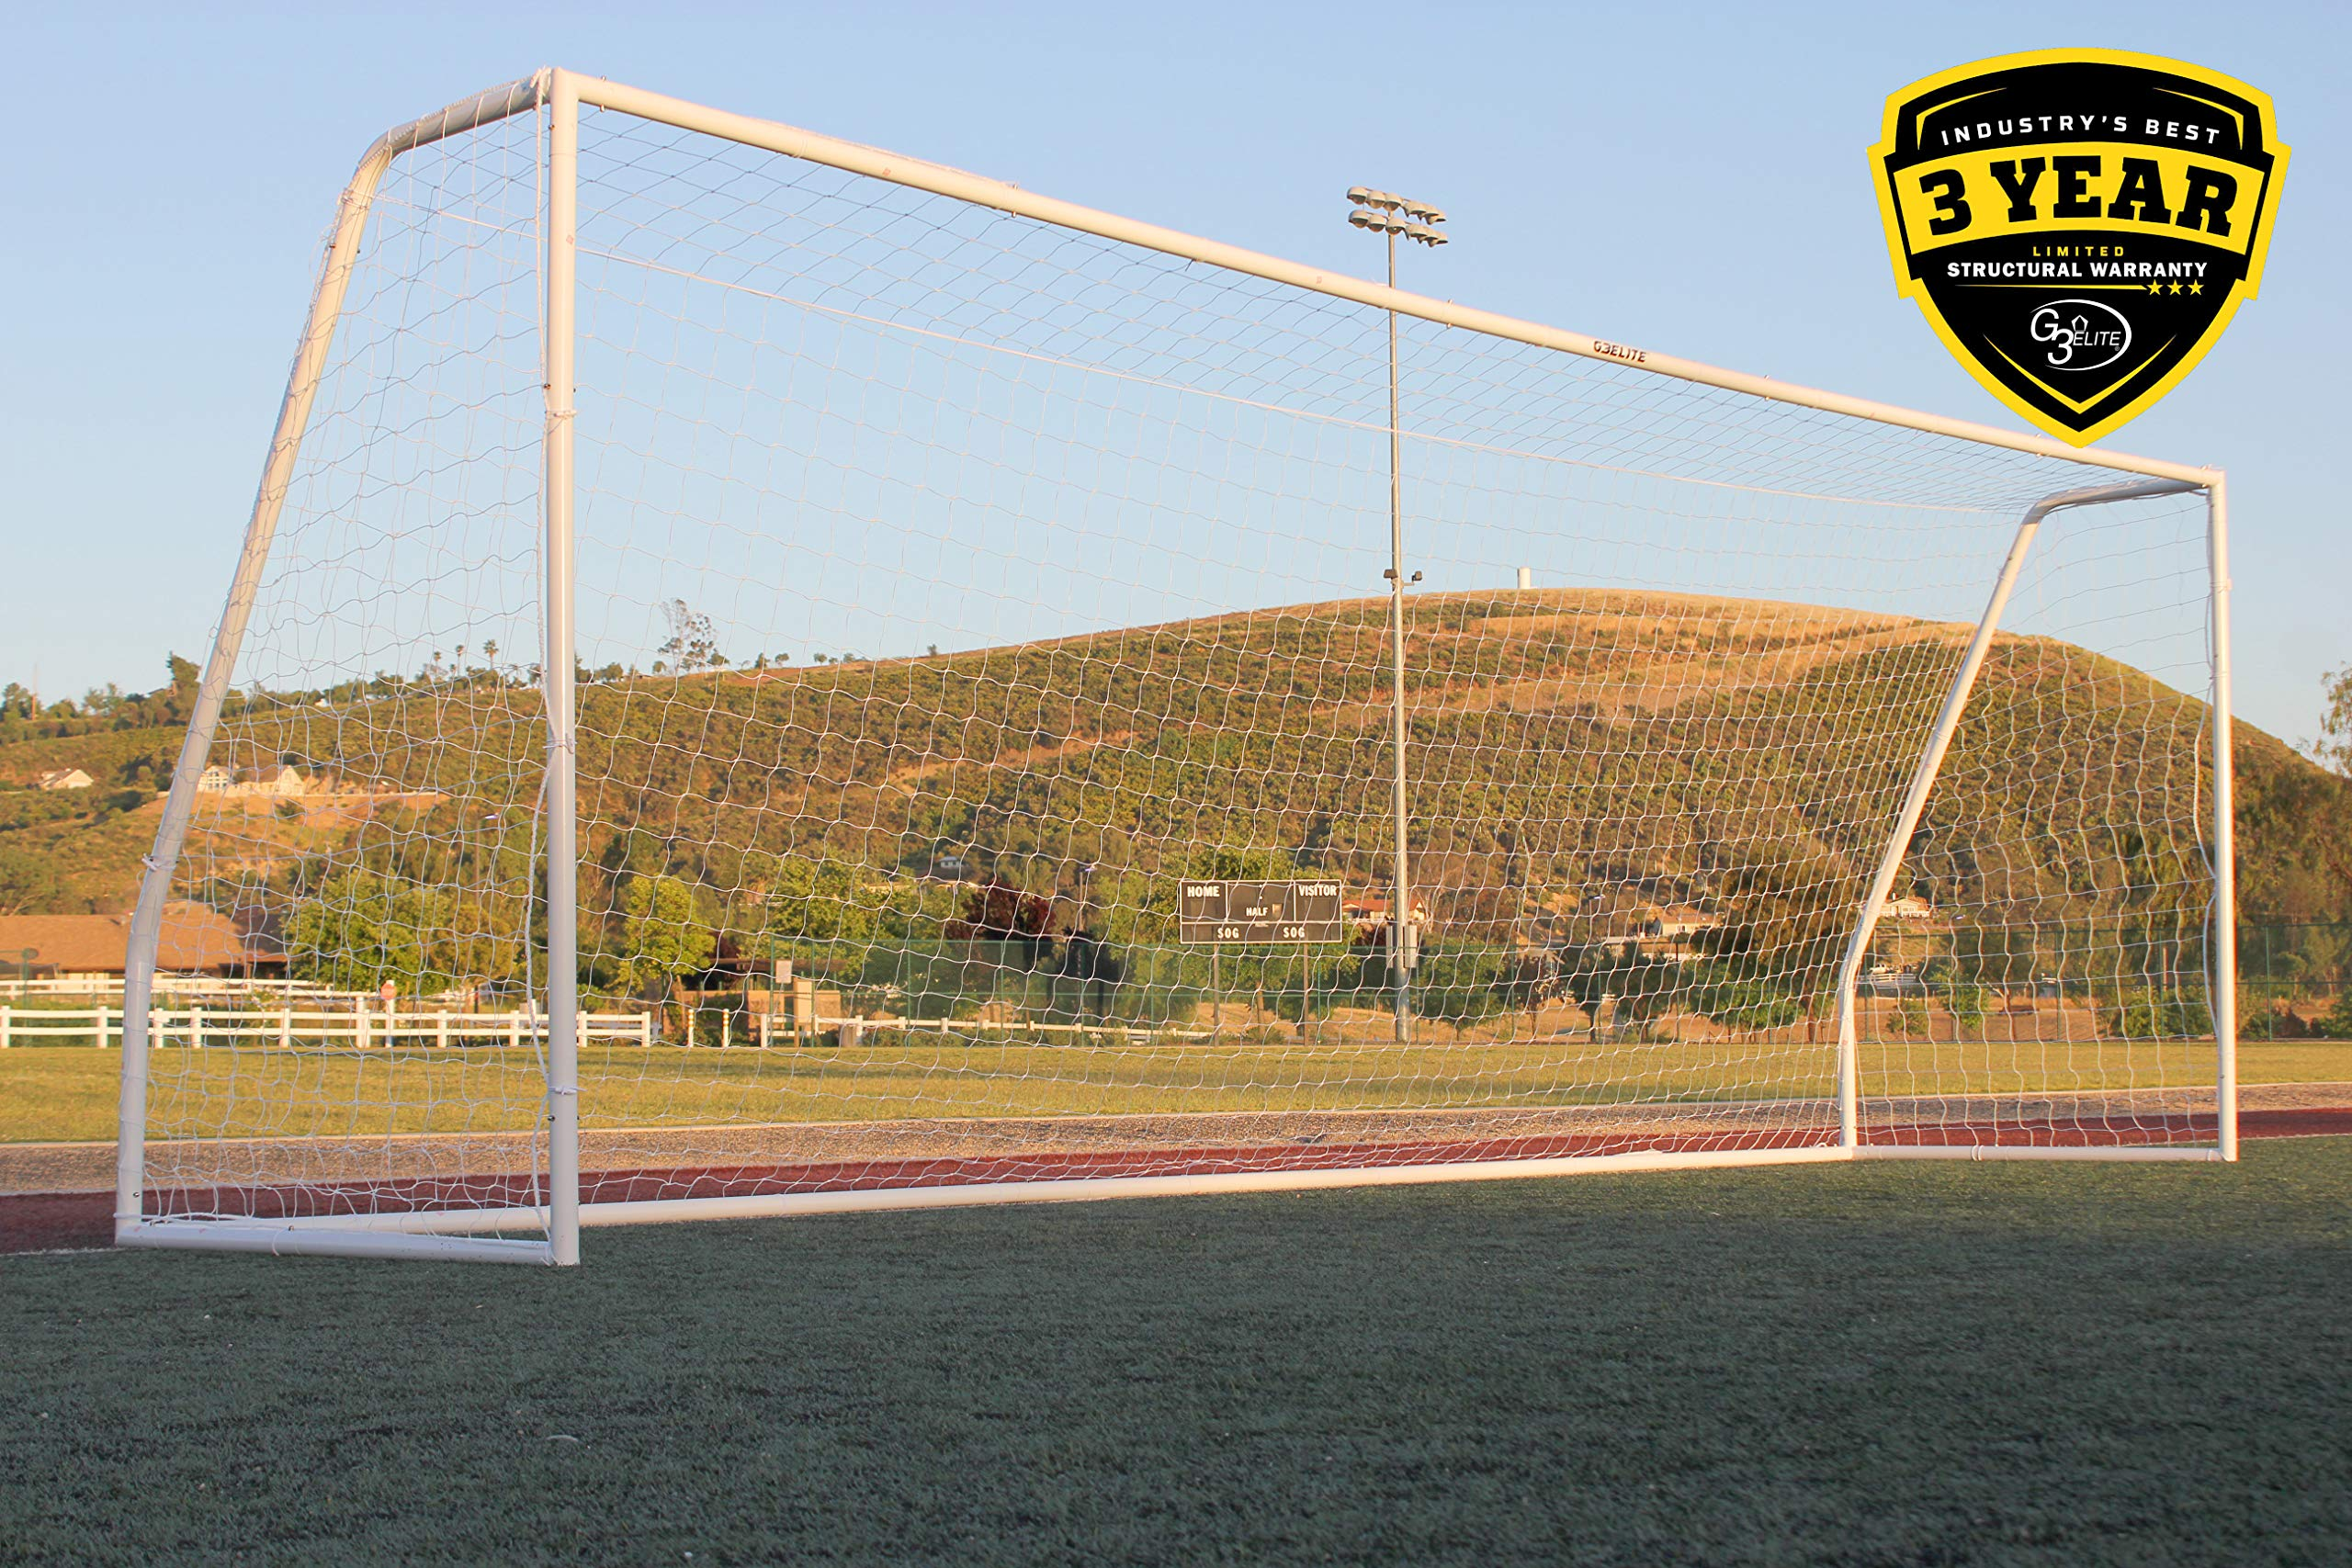 390c7b74258 G3Elite Pro Soccer Goal - Official Regulation League   Tournament Sized -  24x8